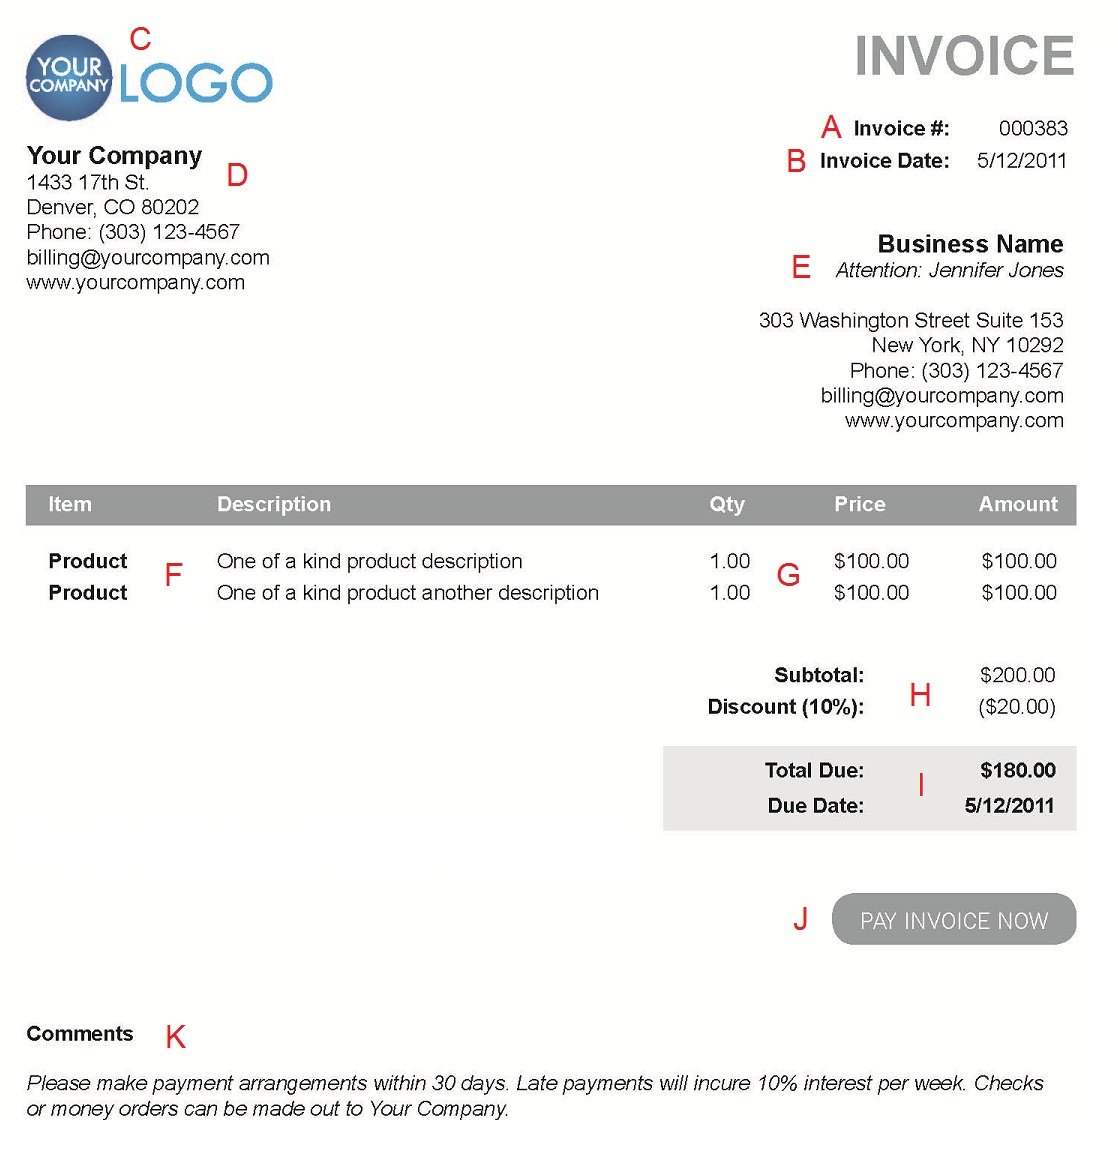 Ultrablogus  Stunning The  Different Sections Of An Electronic Payment Invoice With Heavenly A  With Beautiful Free Blank Invoice Form Also Invoice Letter Template In Addition Invoice Pad And Vendor Invoice Management As Well As Car Invoice Pricing Additionally Purchase Invoice Template From Paysimplecom With Ultrablogus  Heavenly The  Different Sections Of An Electronic Payment Invoice With Beautiful A  And Stunning Free Blank Invoice Form Also Invoice Letter Template In Addition Invoice Pad From Paysimplecom